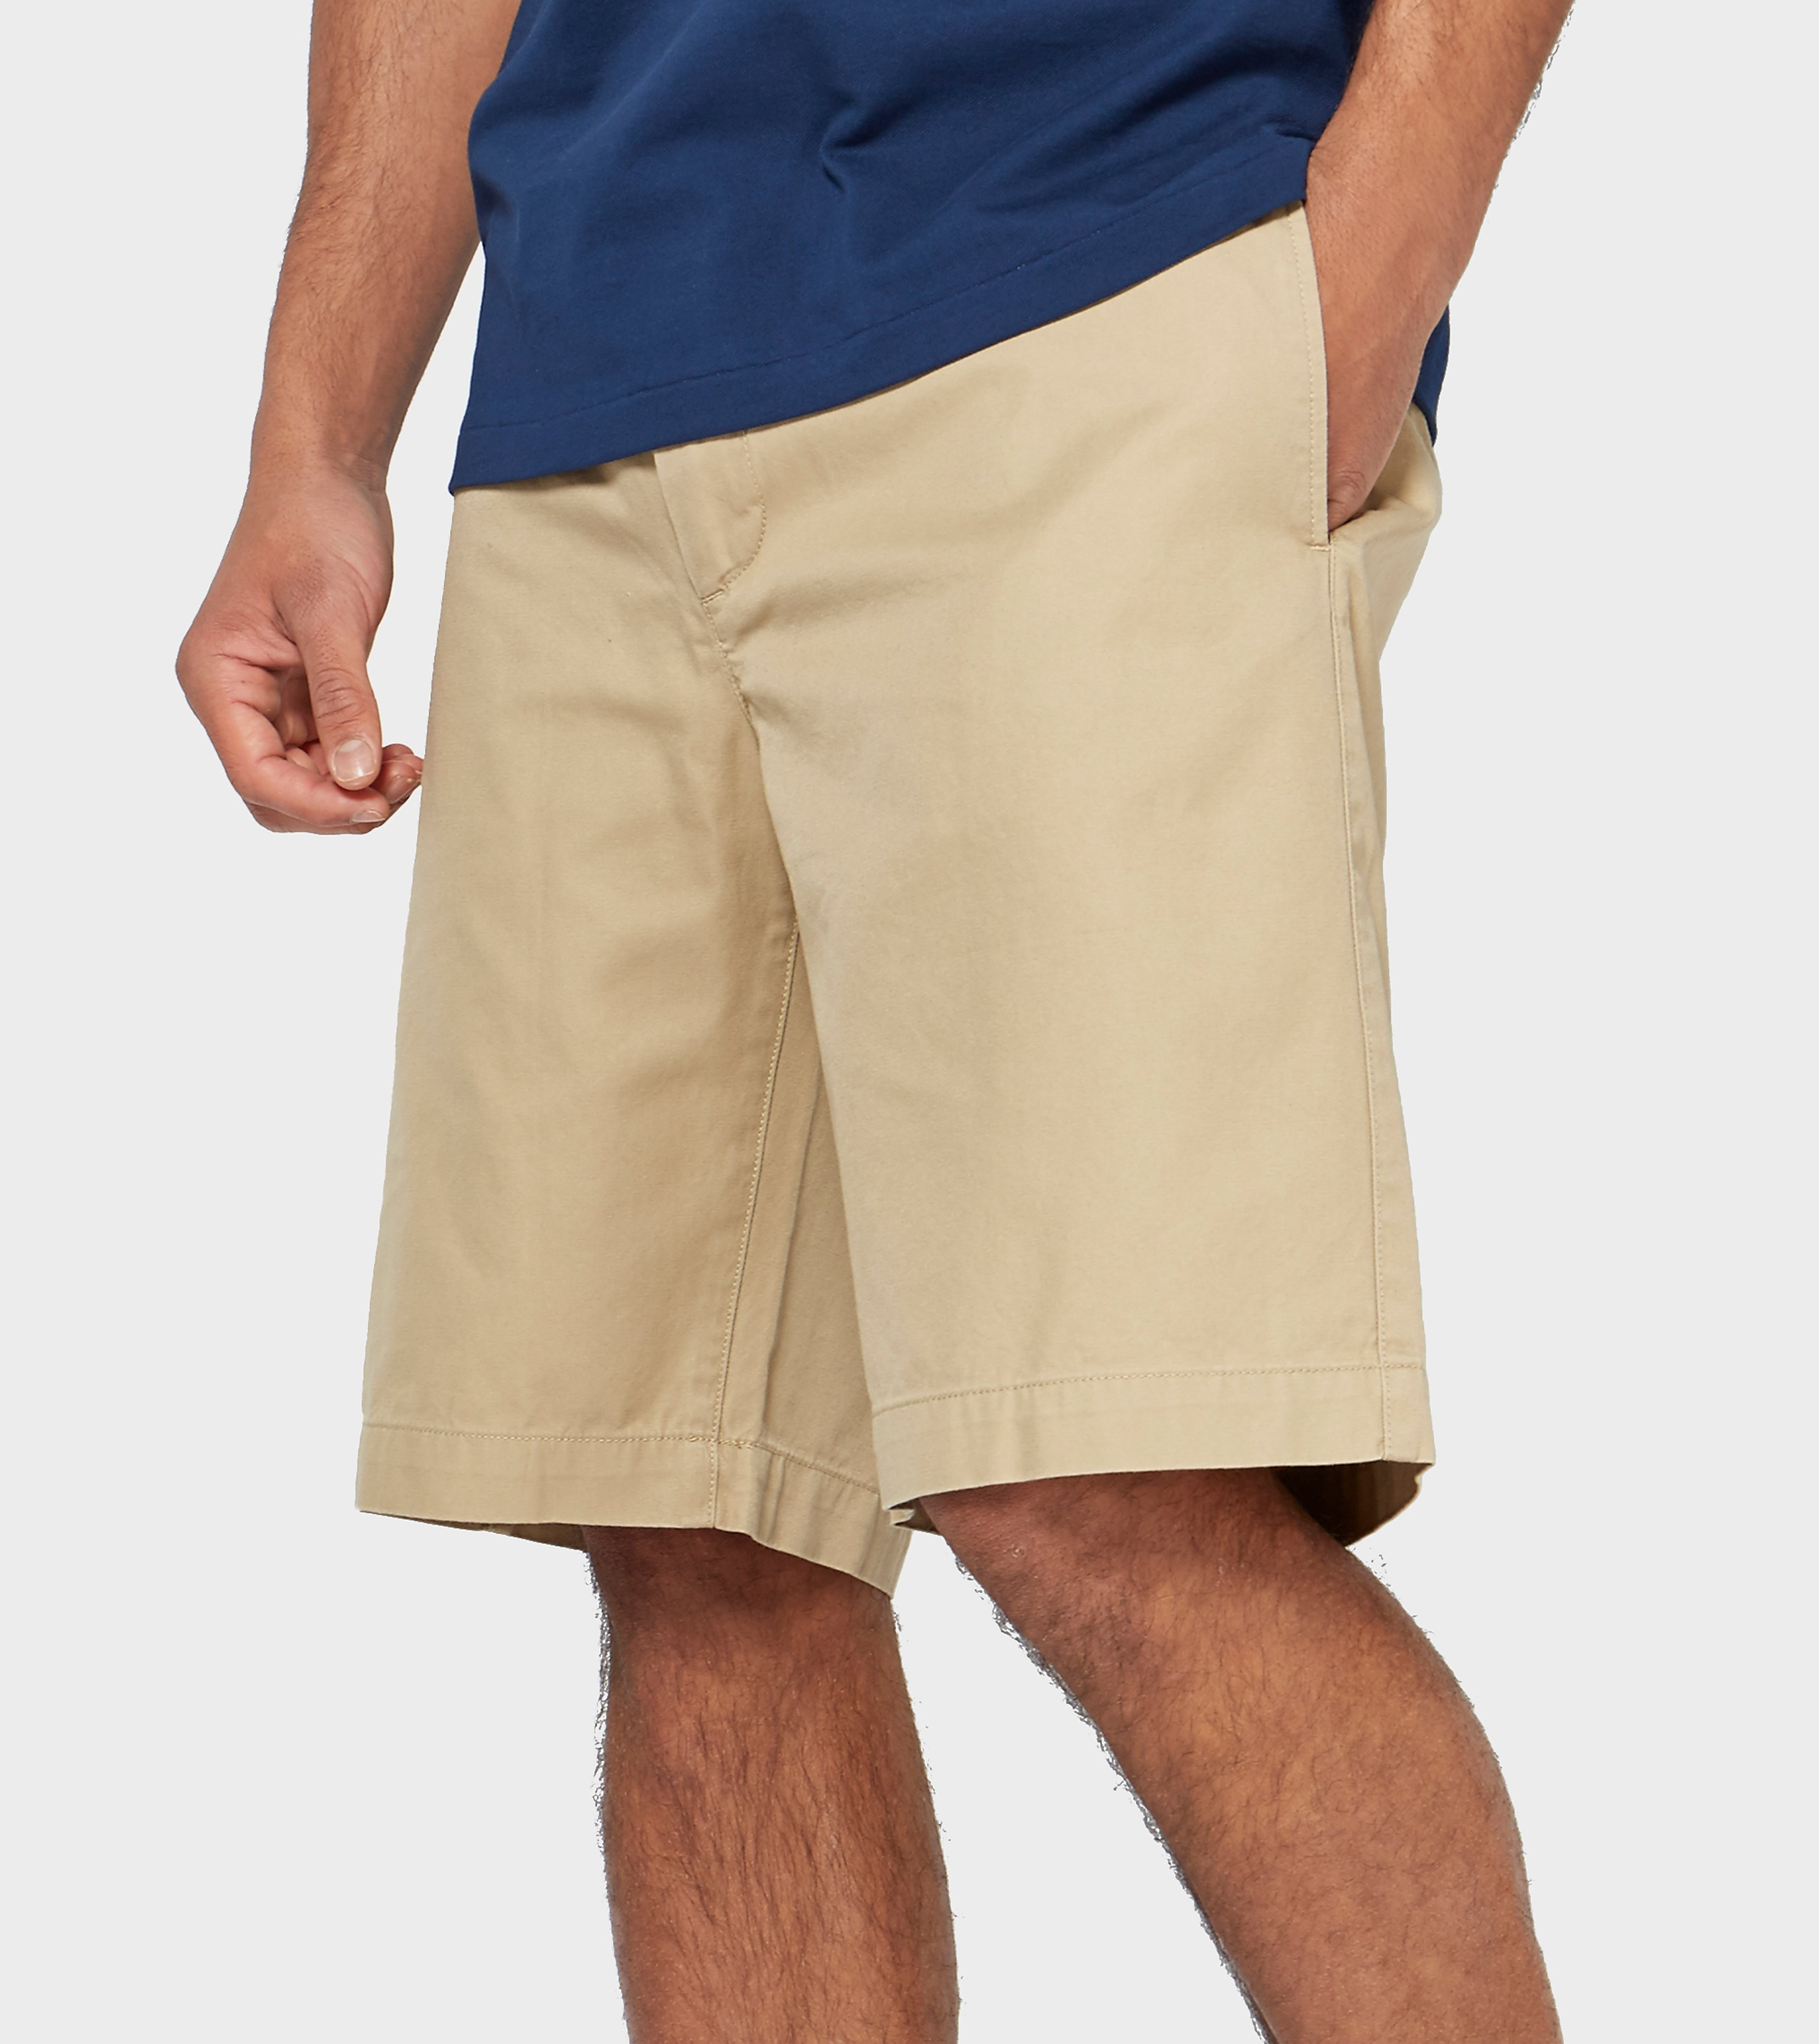 Lacoste Chino Shorts